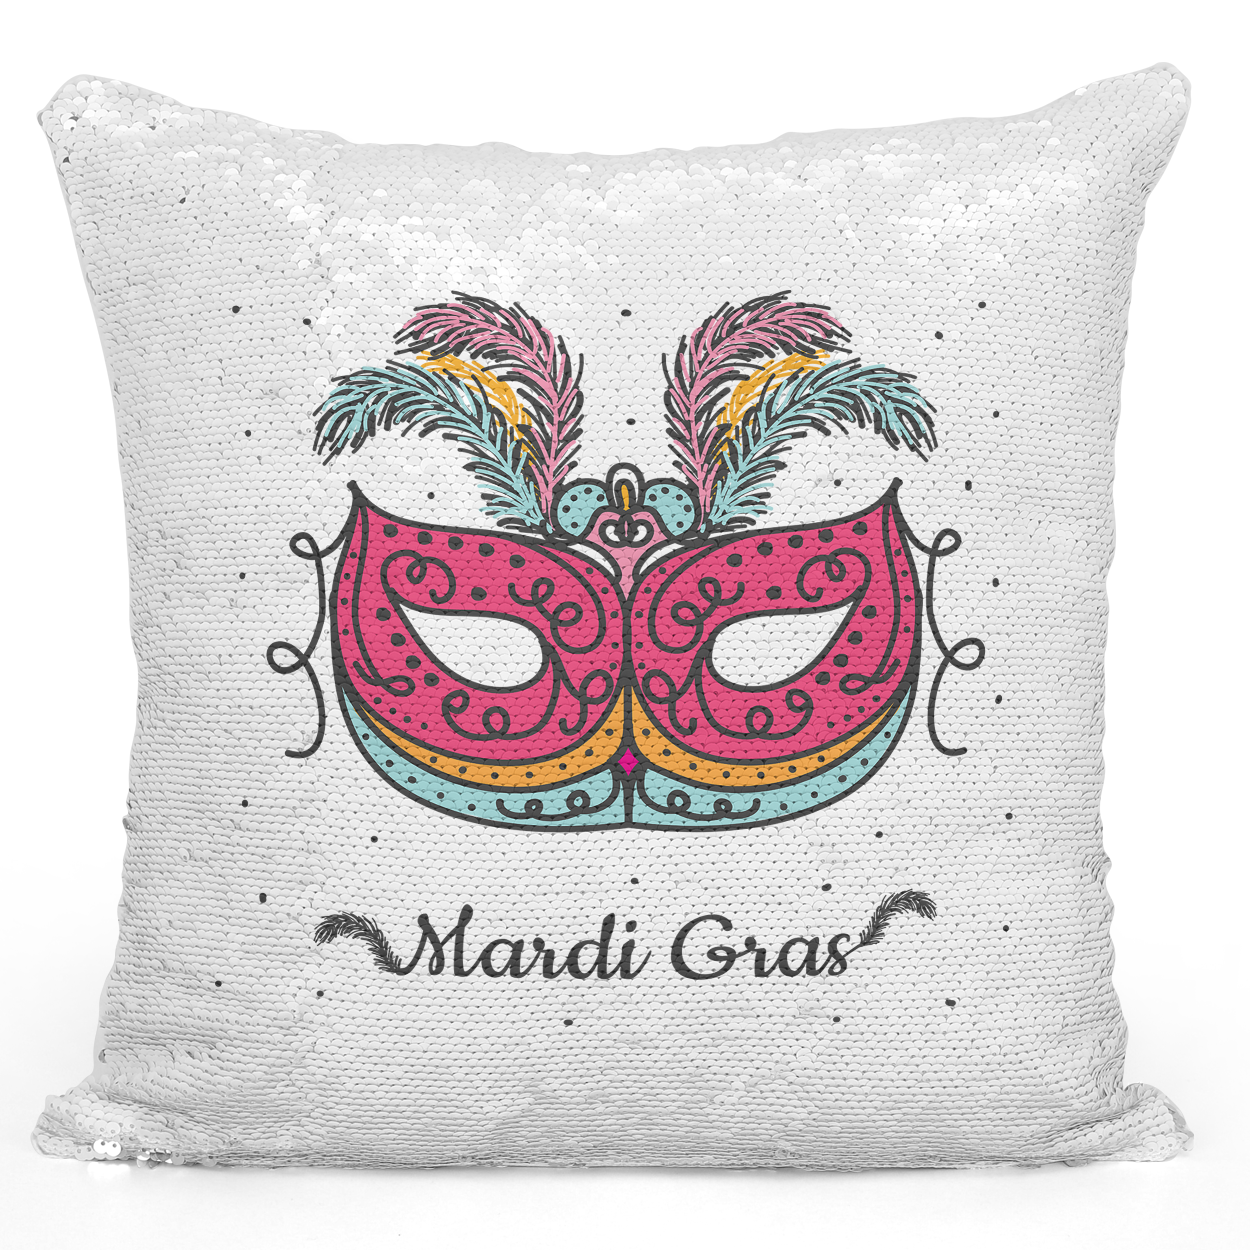 16x16 inch Sequin Throw Pillow Magic Flip Pillow Mardi Gras Festival Mask Loud Universe